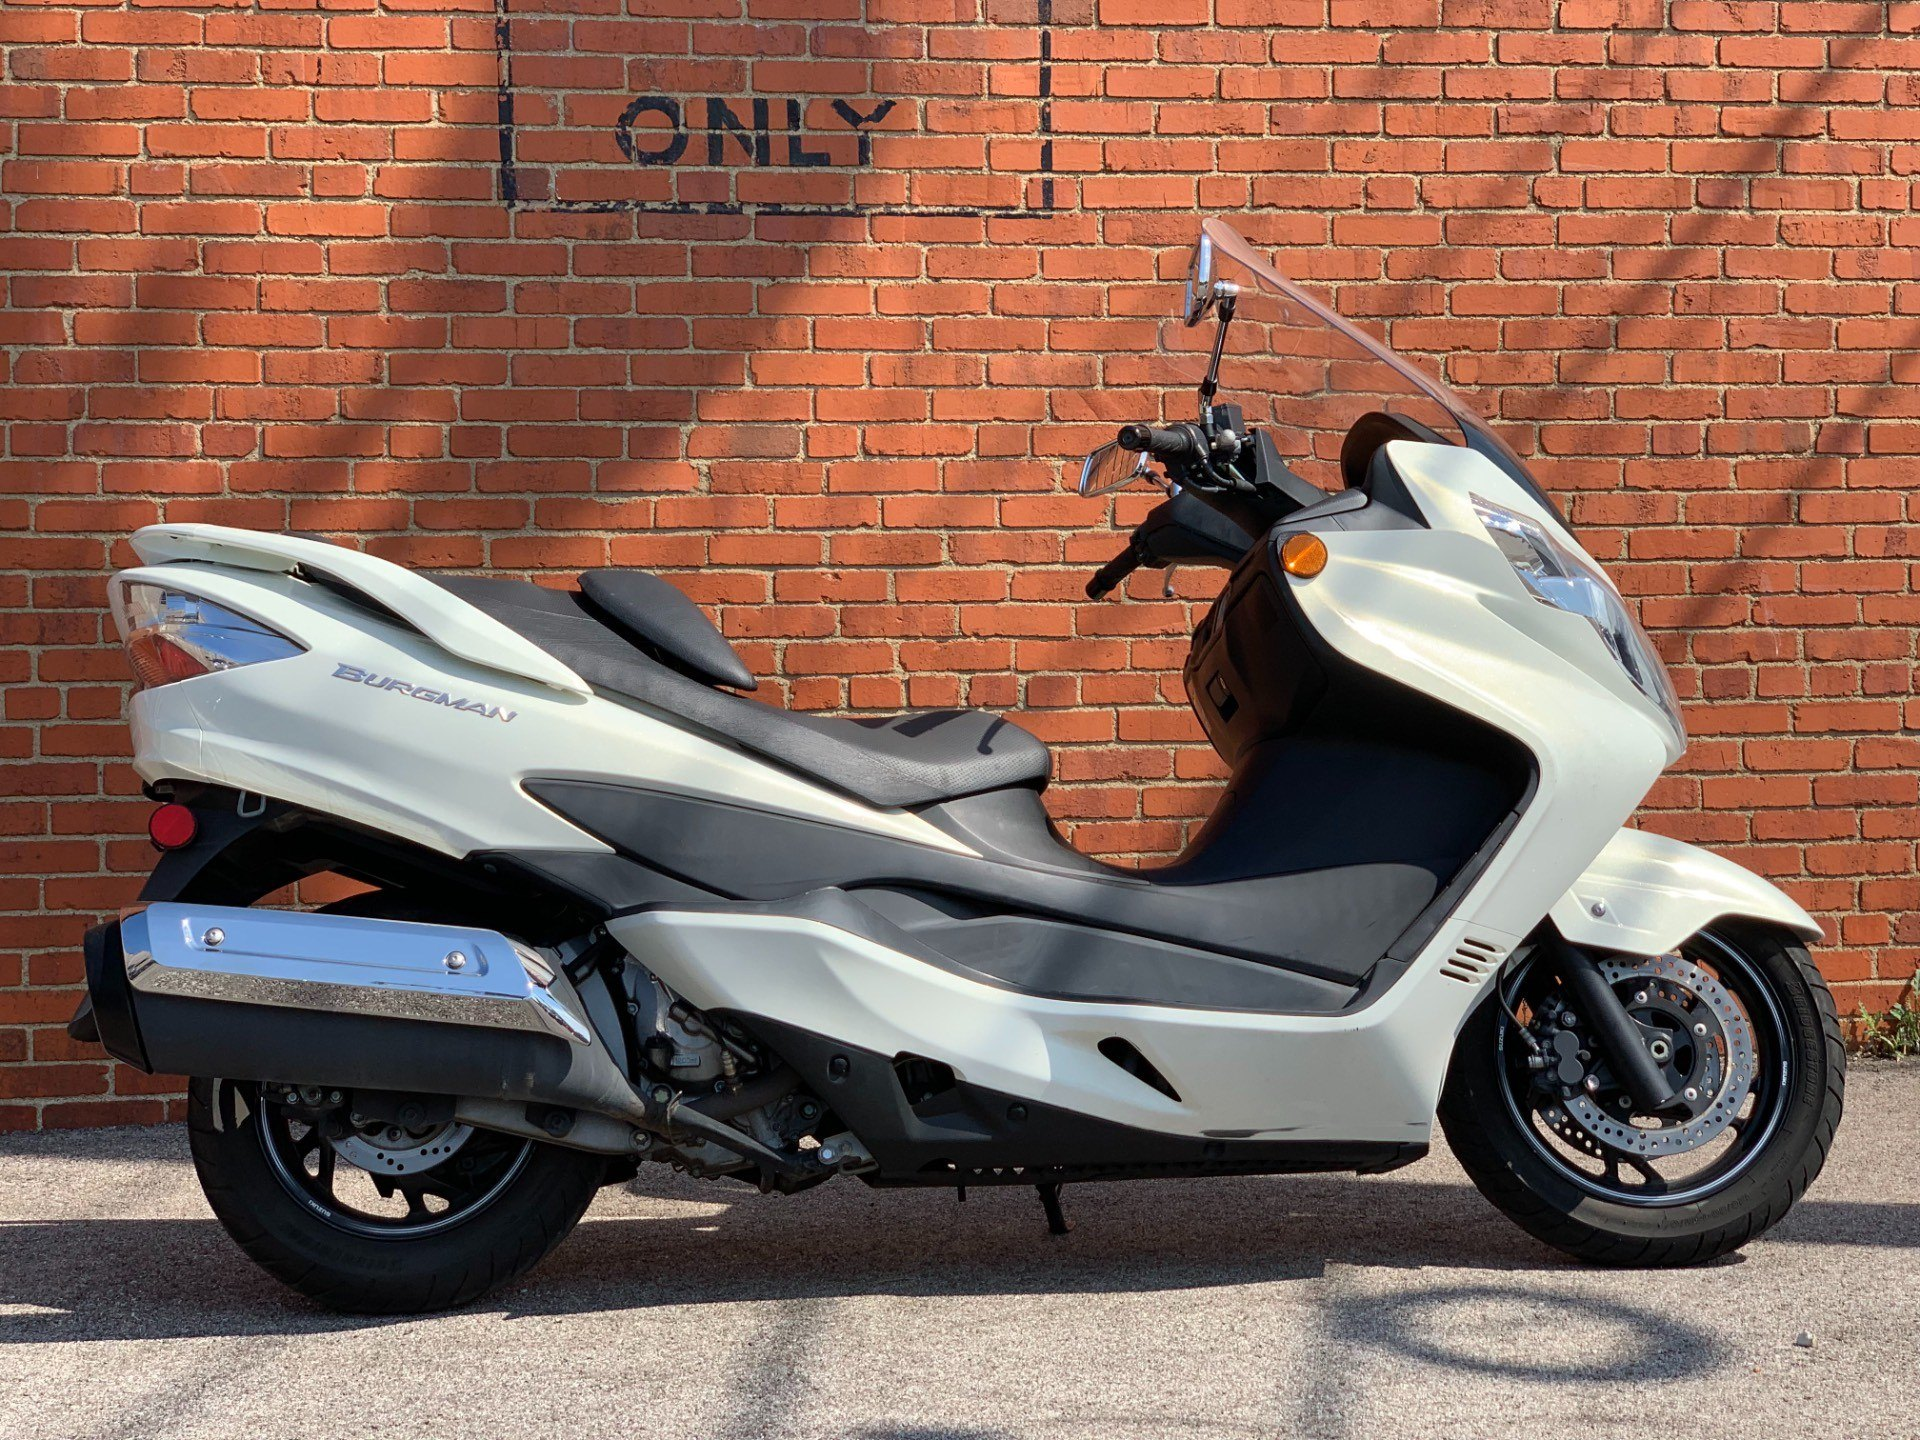 2012 Suzuki Burgman™ 400 ABS in Cleveland, Ohio - Photo 1